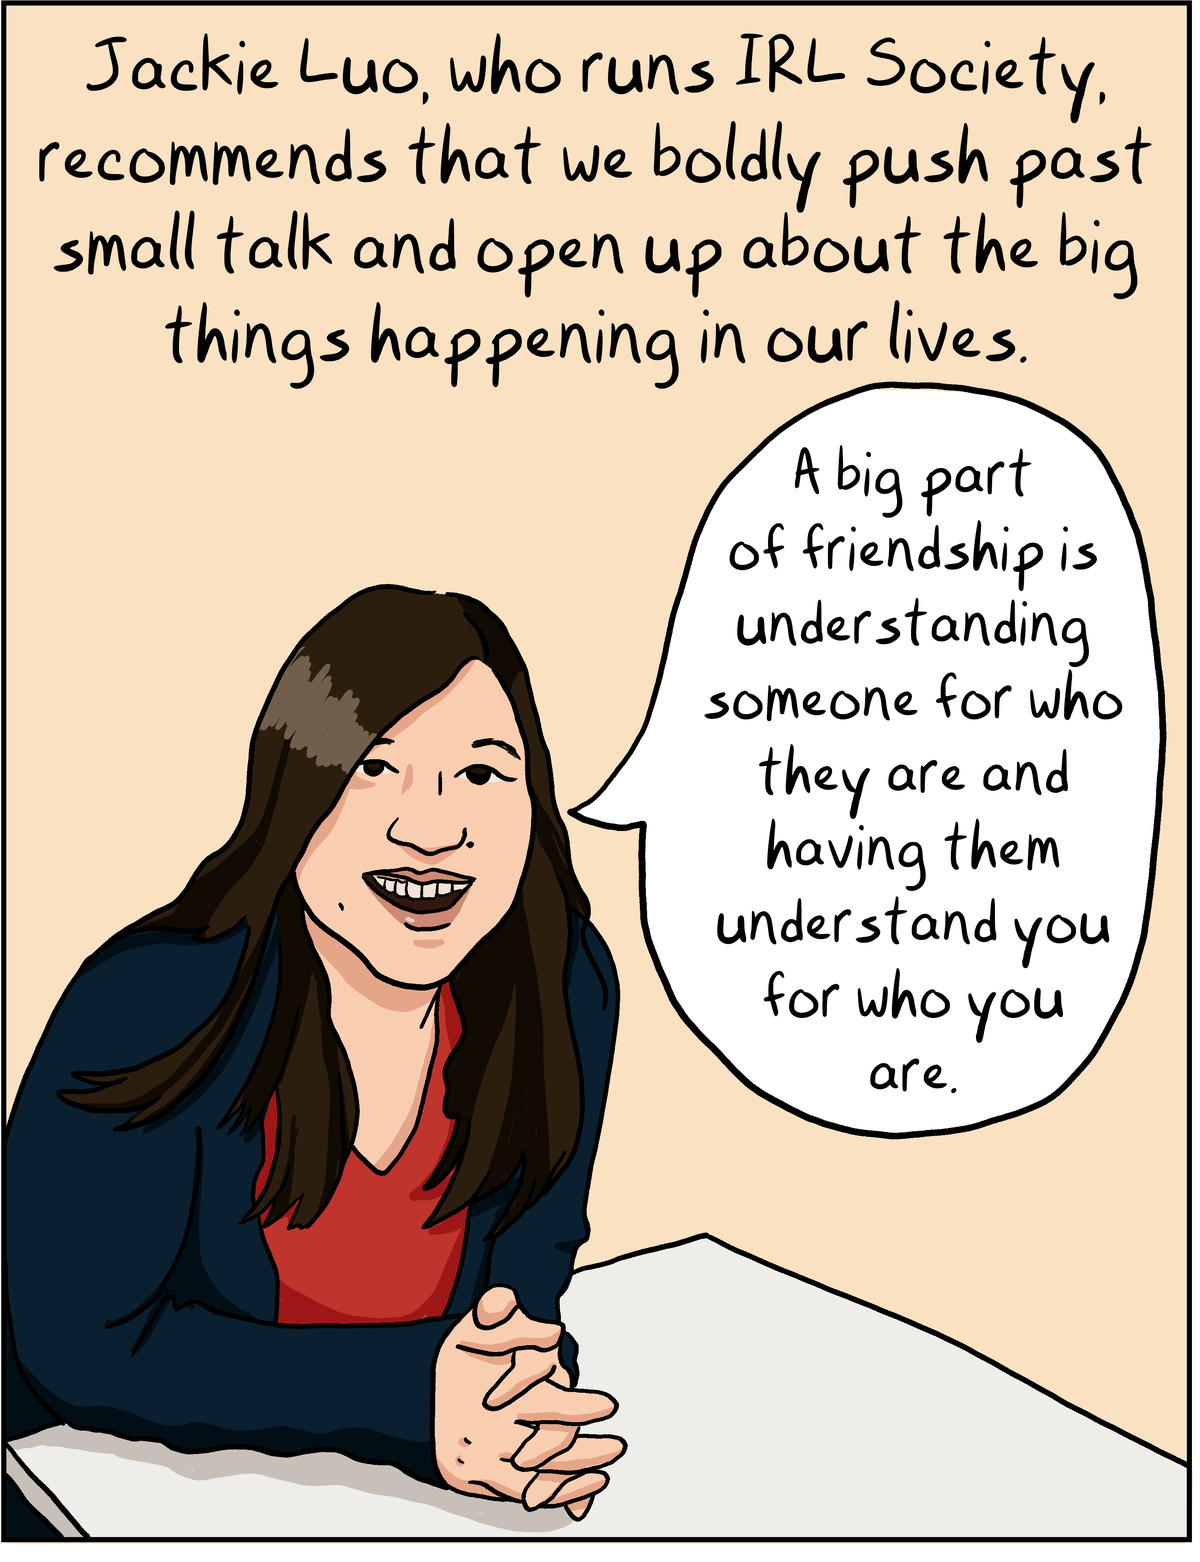 Jackie Luo, who runs IRL society, recommends that we boldly push past small talk and open up about the big things happening in our lives.